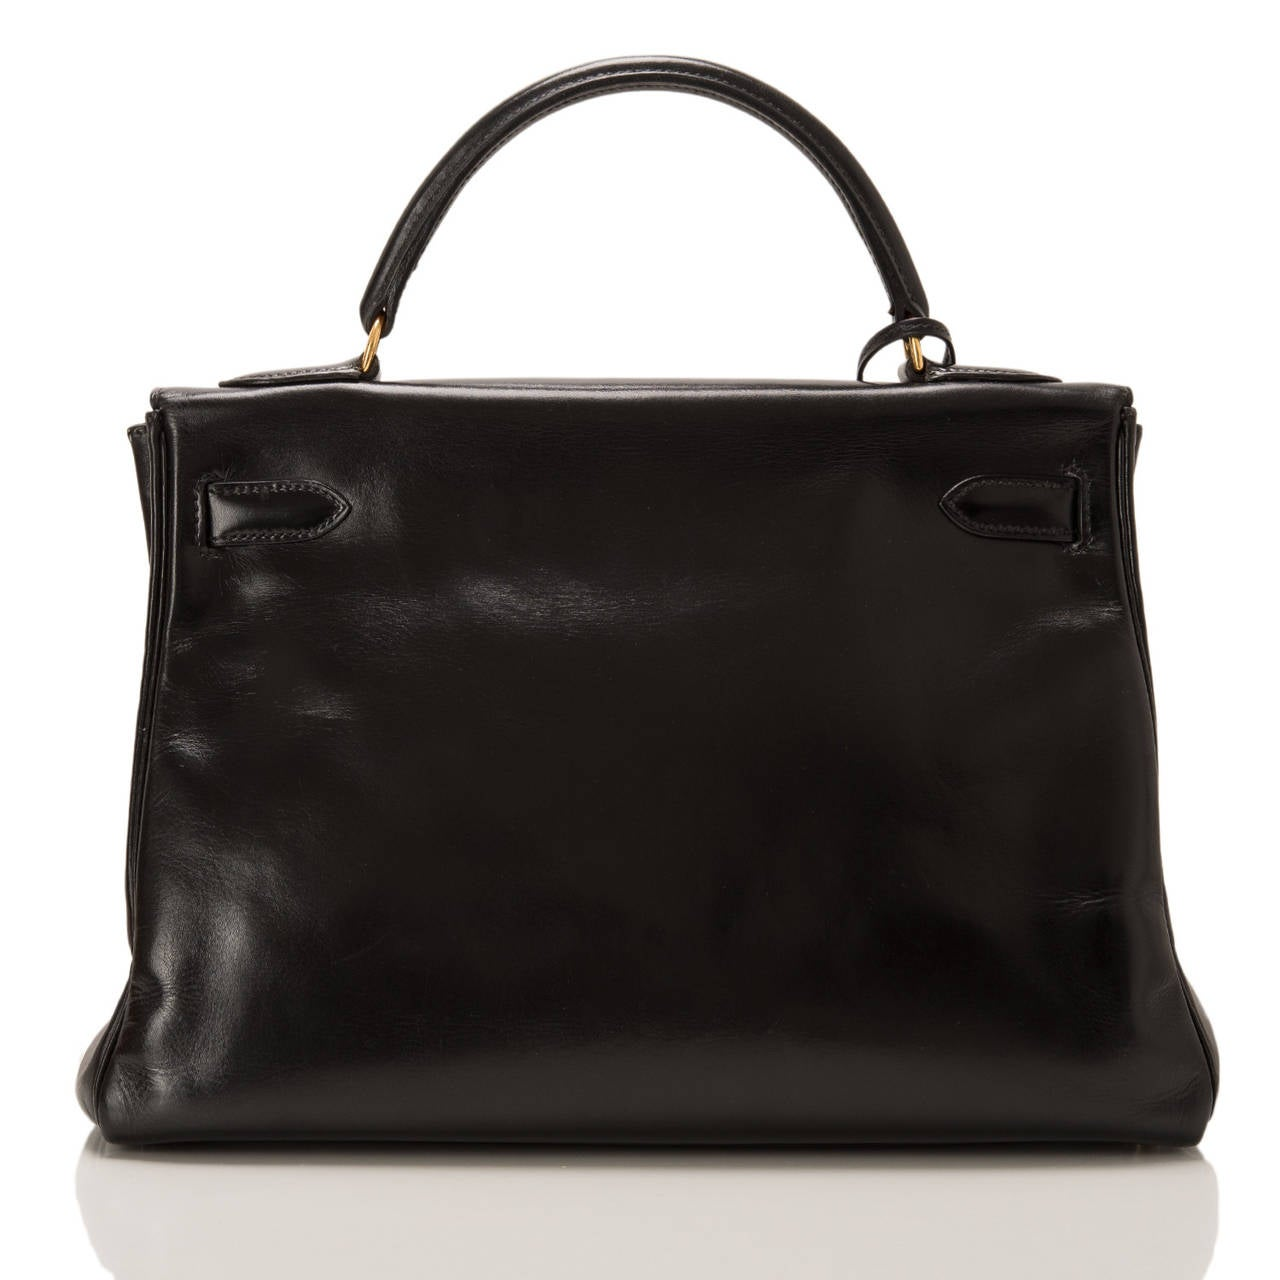 Hermes Vintage Black Box Kelly 32cm Gold Hardware In Excellent Condition For Sale In New York, NY